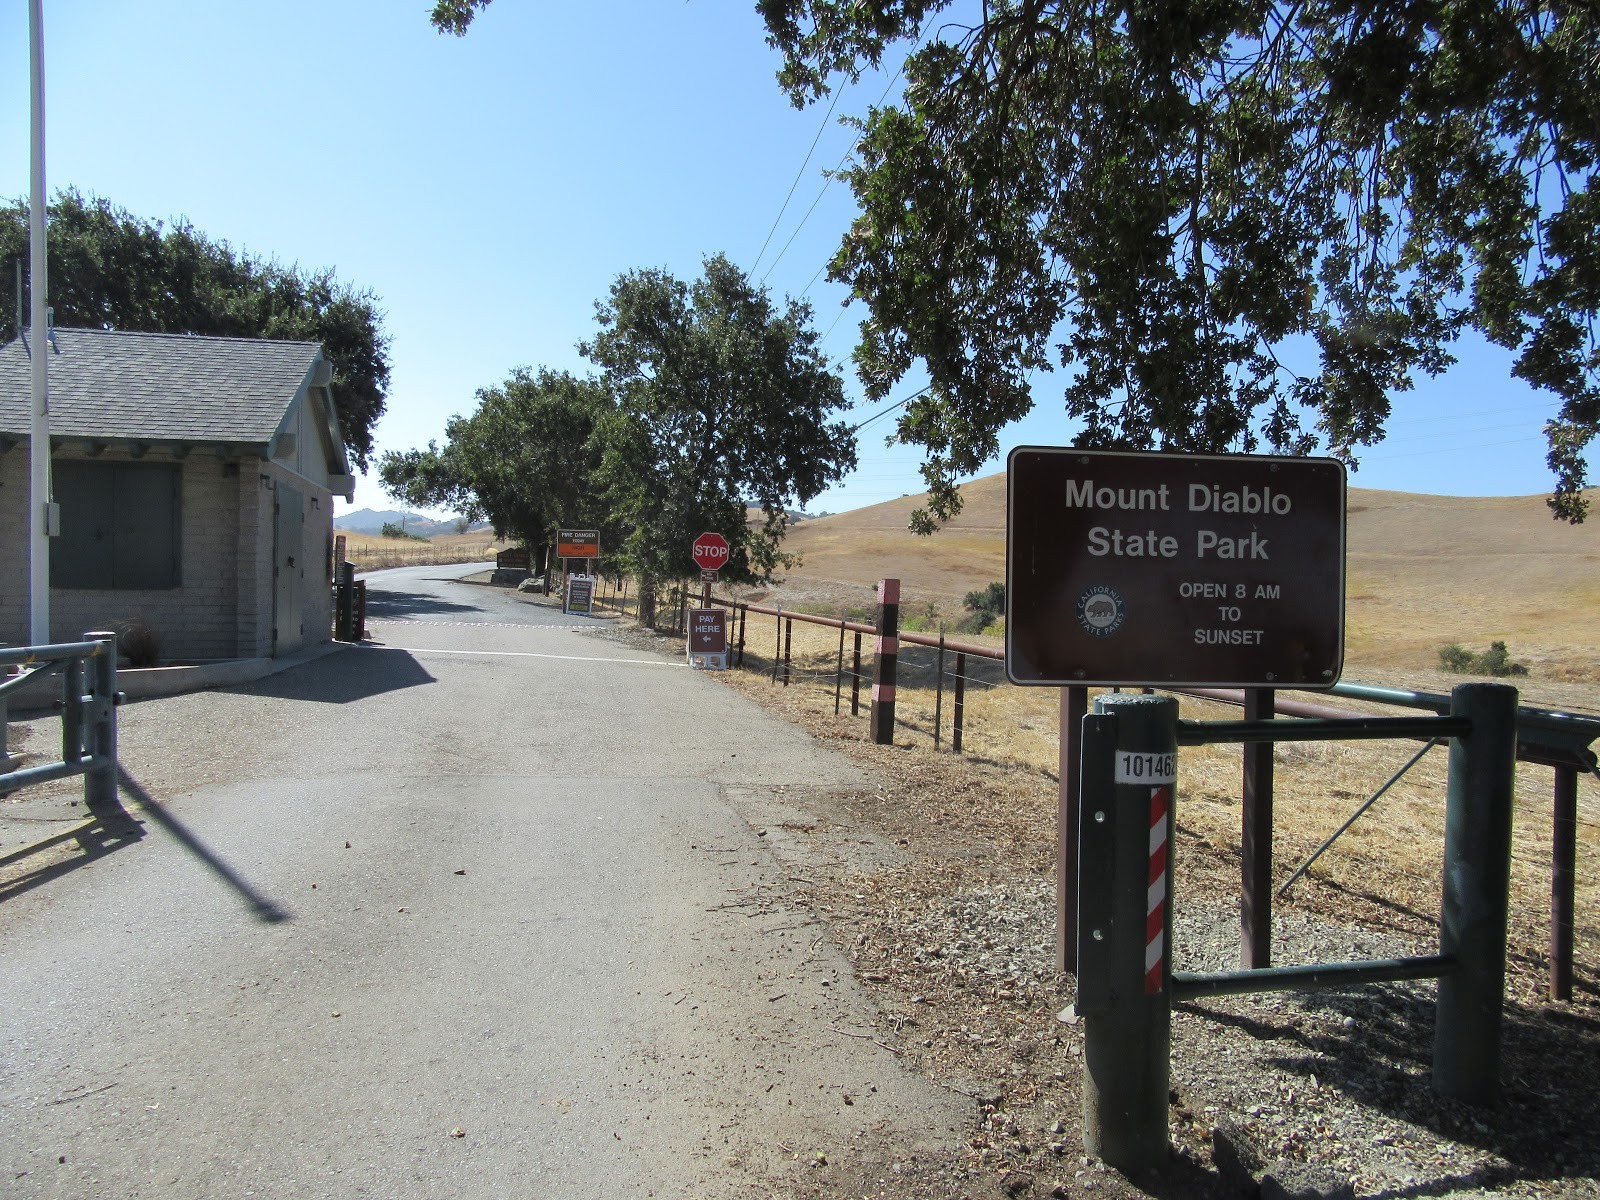 Cycling Mt. Diablo - North Gate - ranger station and park gate